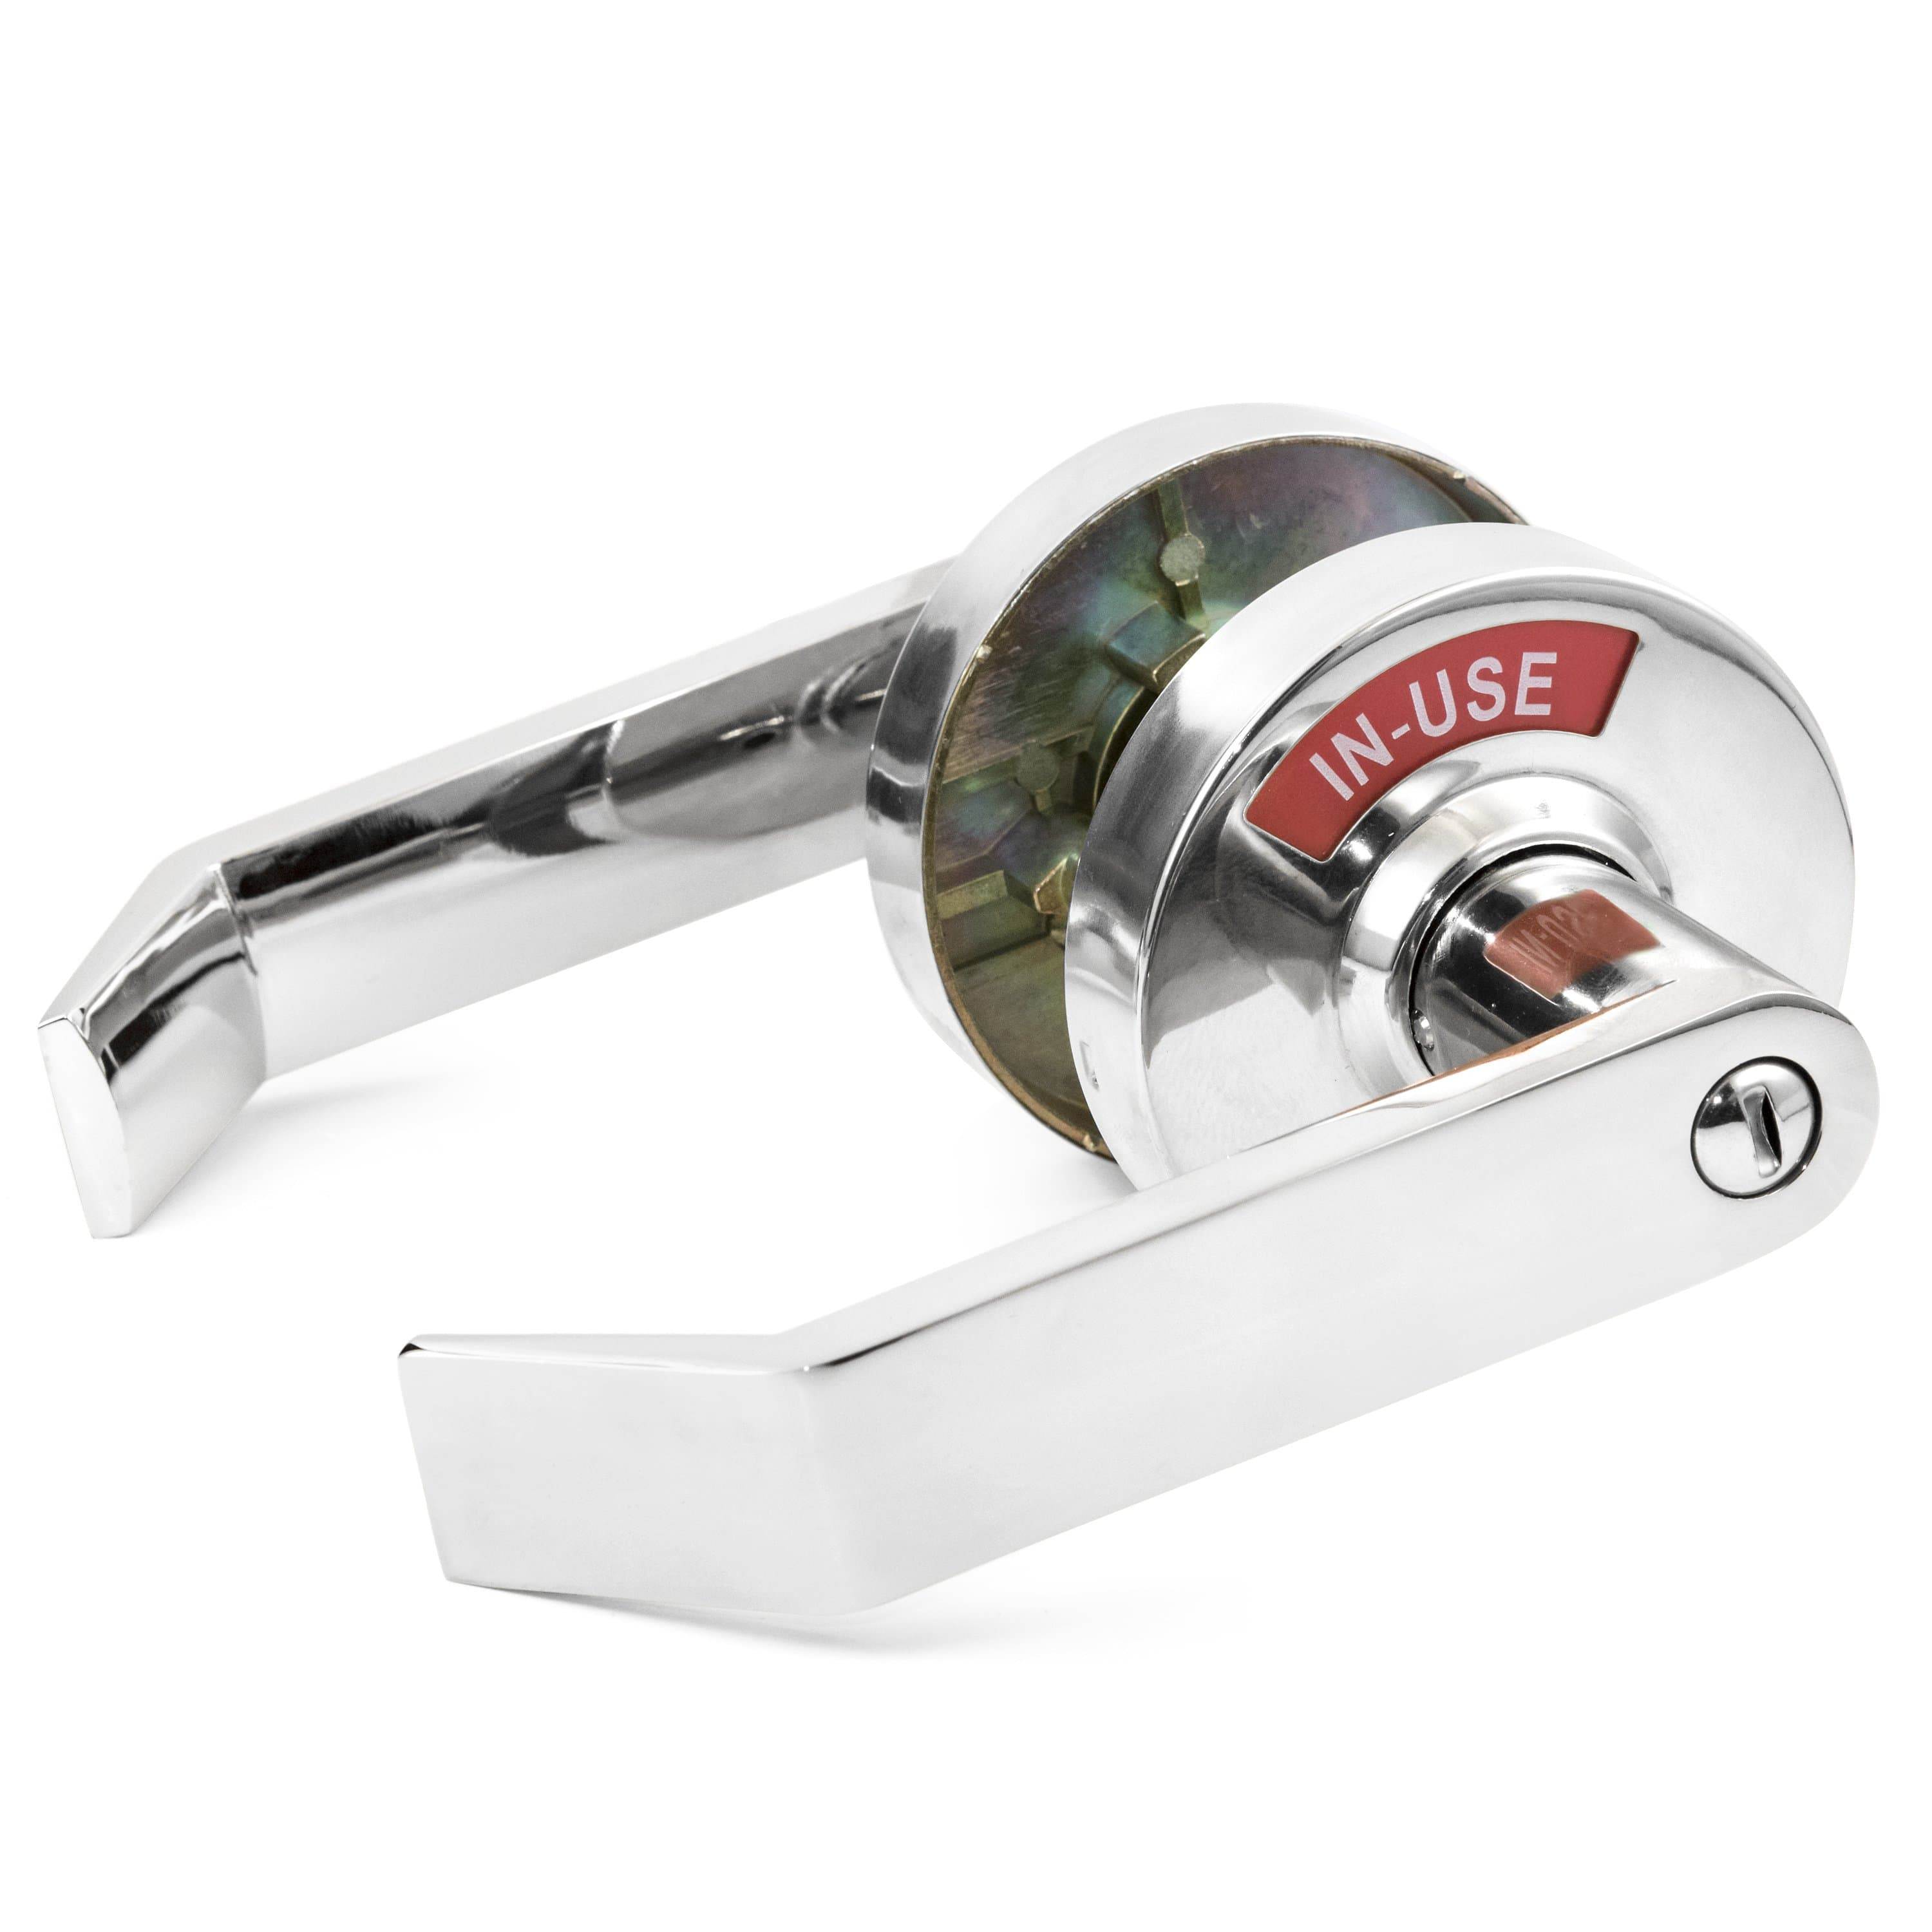 Privacy Lock with Occupancy Indicator in Polished Chrome Left-handed